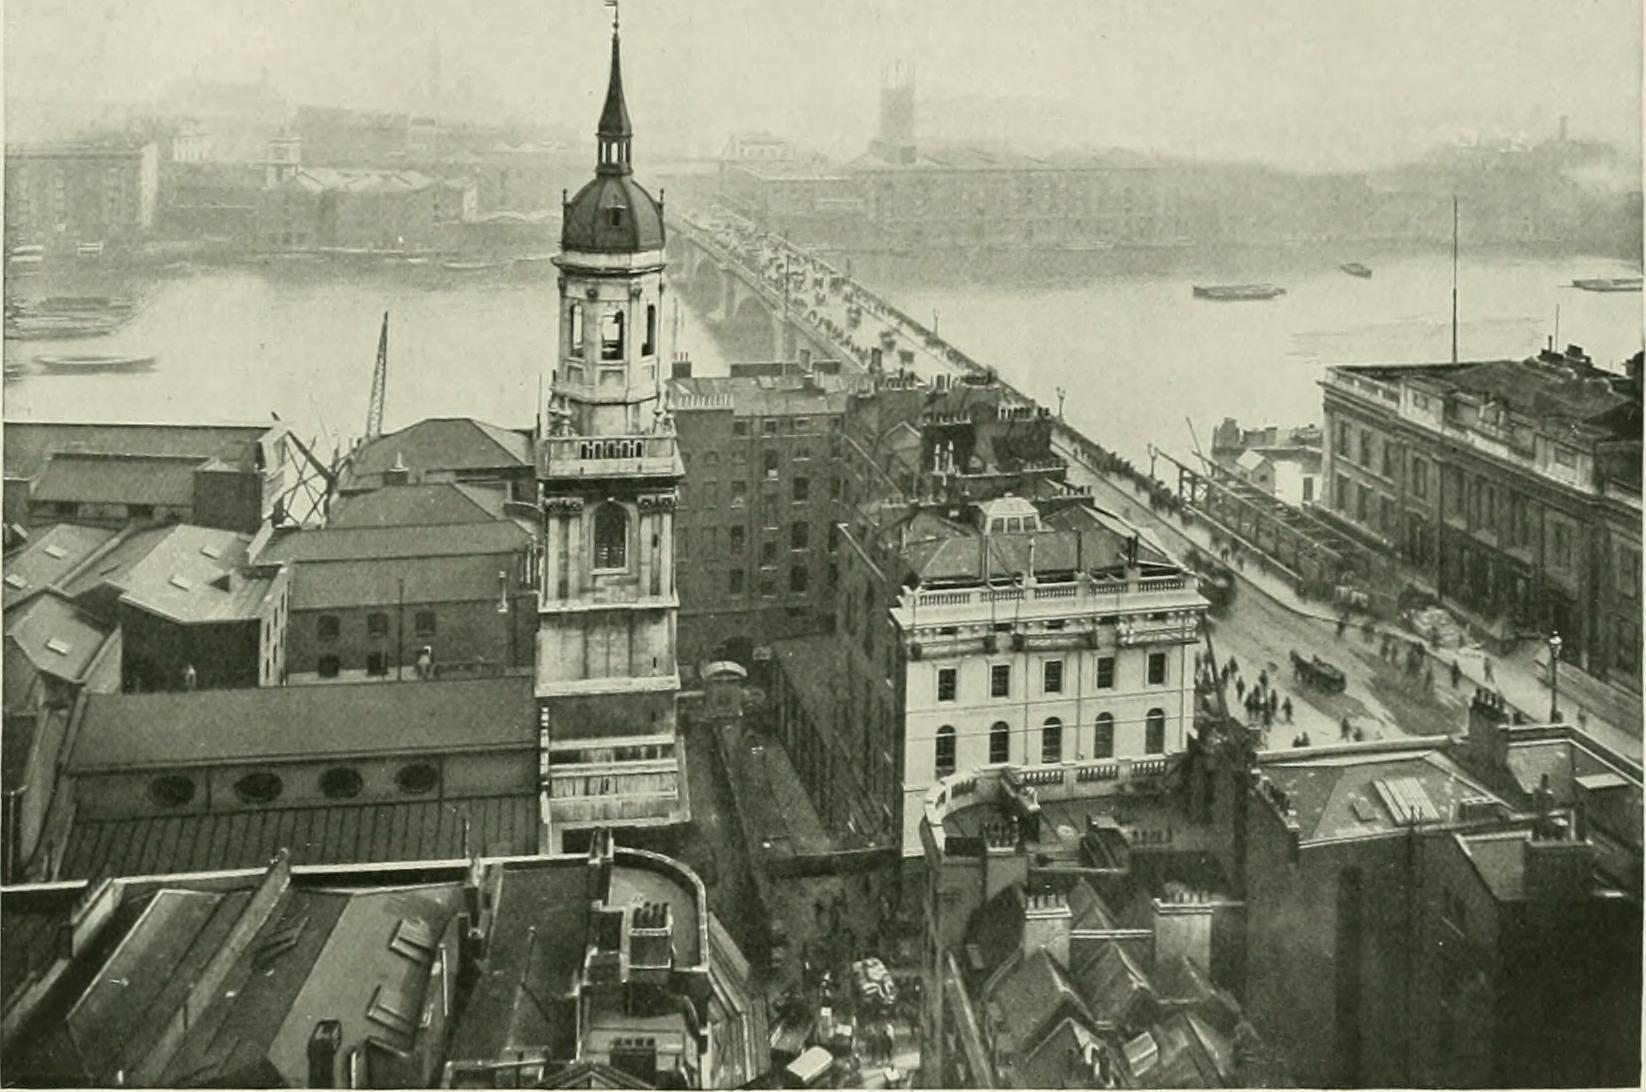 London Bridge and the river seen from the top of the Monument.